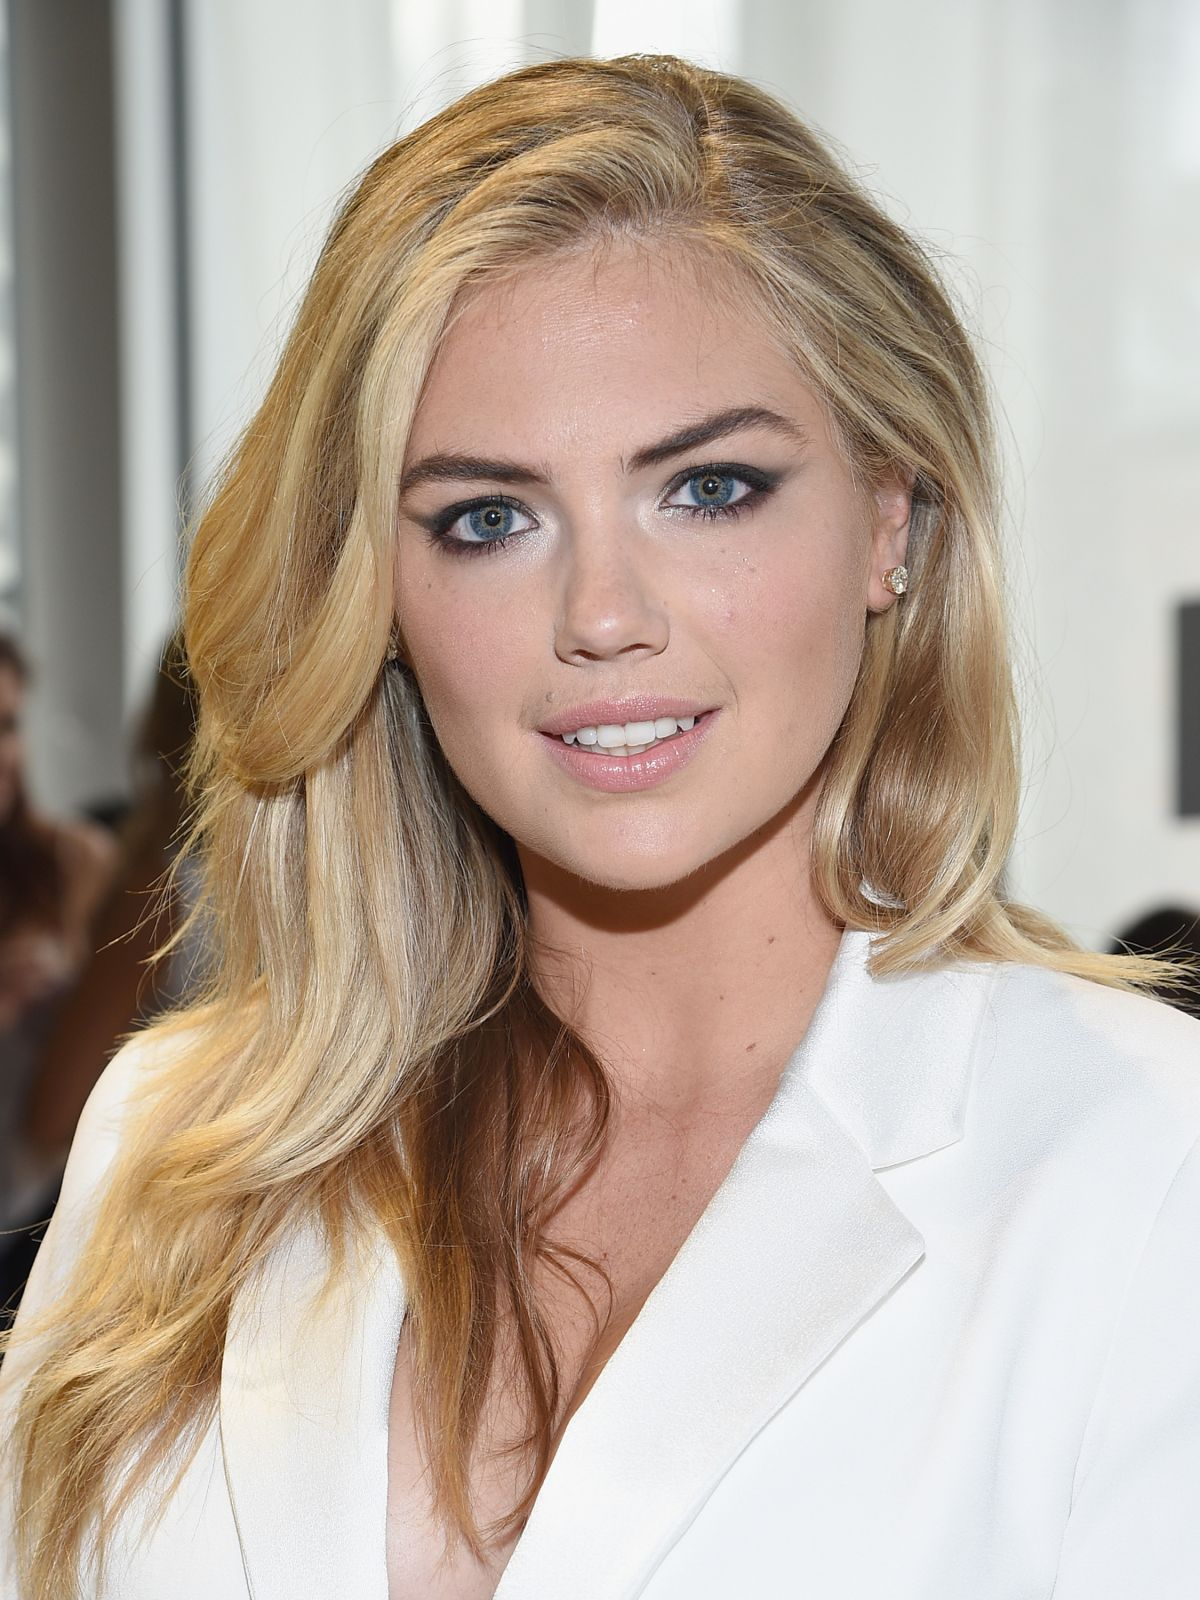 kate-upton-at-diane-von-furstenberg-fashion-show-in-new-york-09-13-2015_3